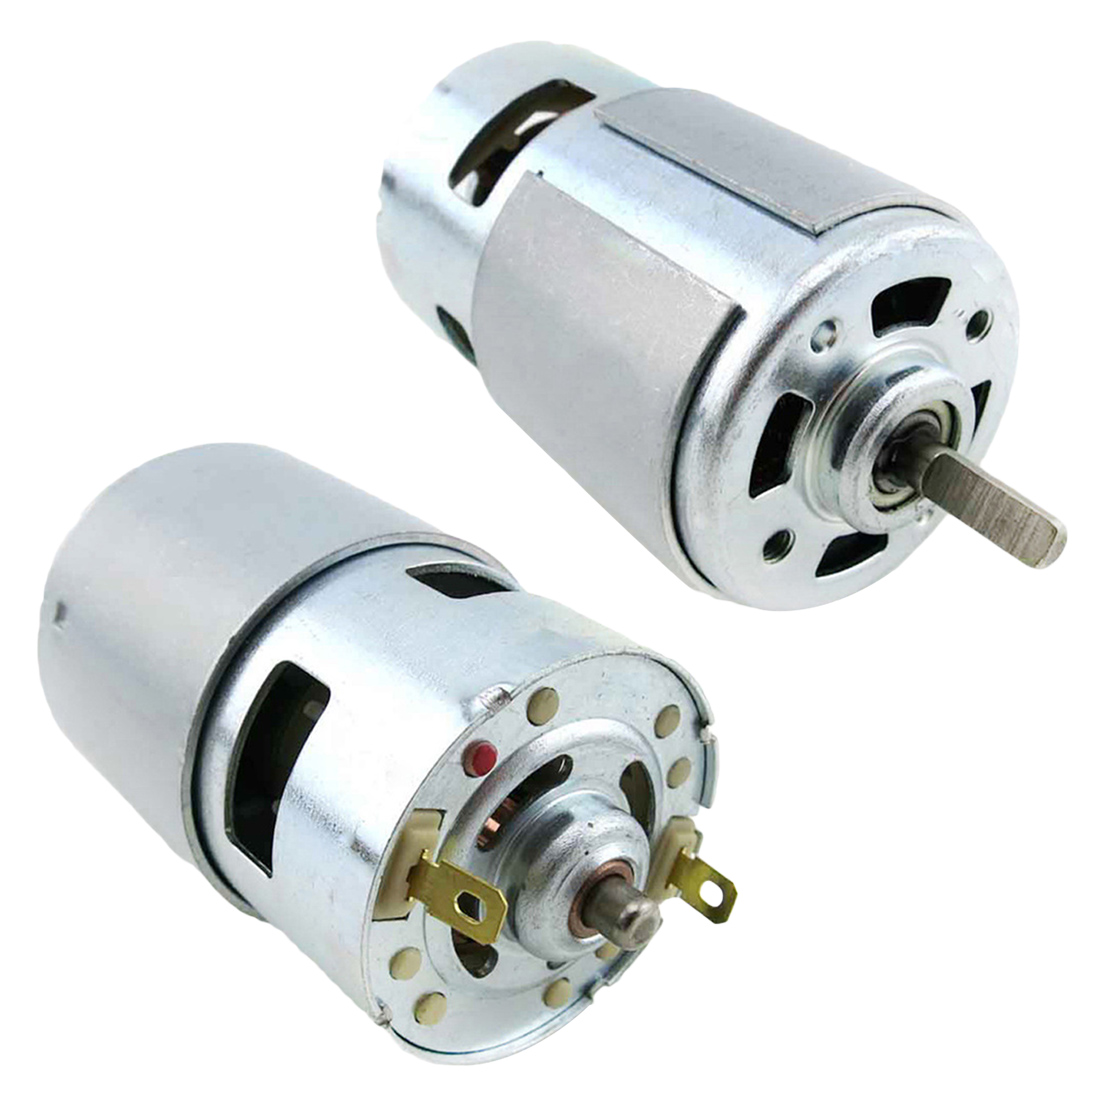 775 DC Motor DC 12V-24V 4500 RPM Ball Bearing Large Torque High Power Low Noise Electronic Component Motor цена